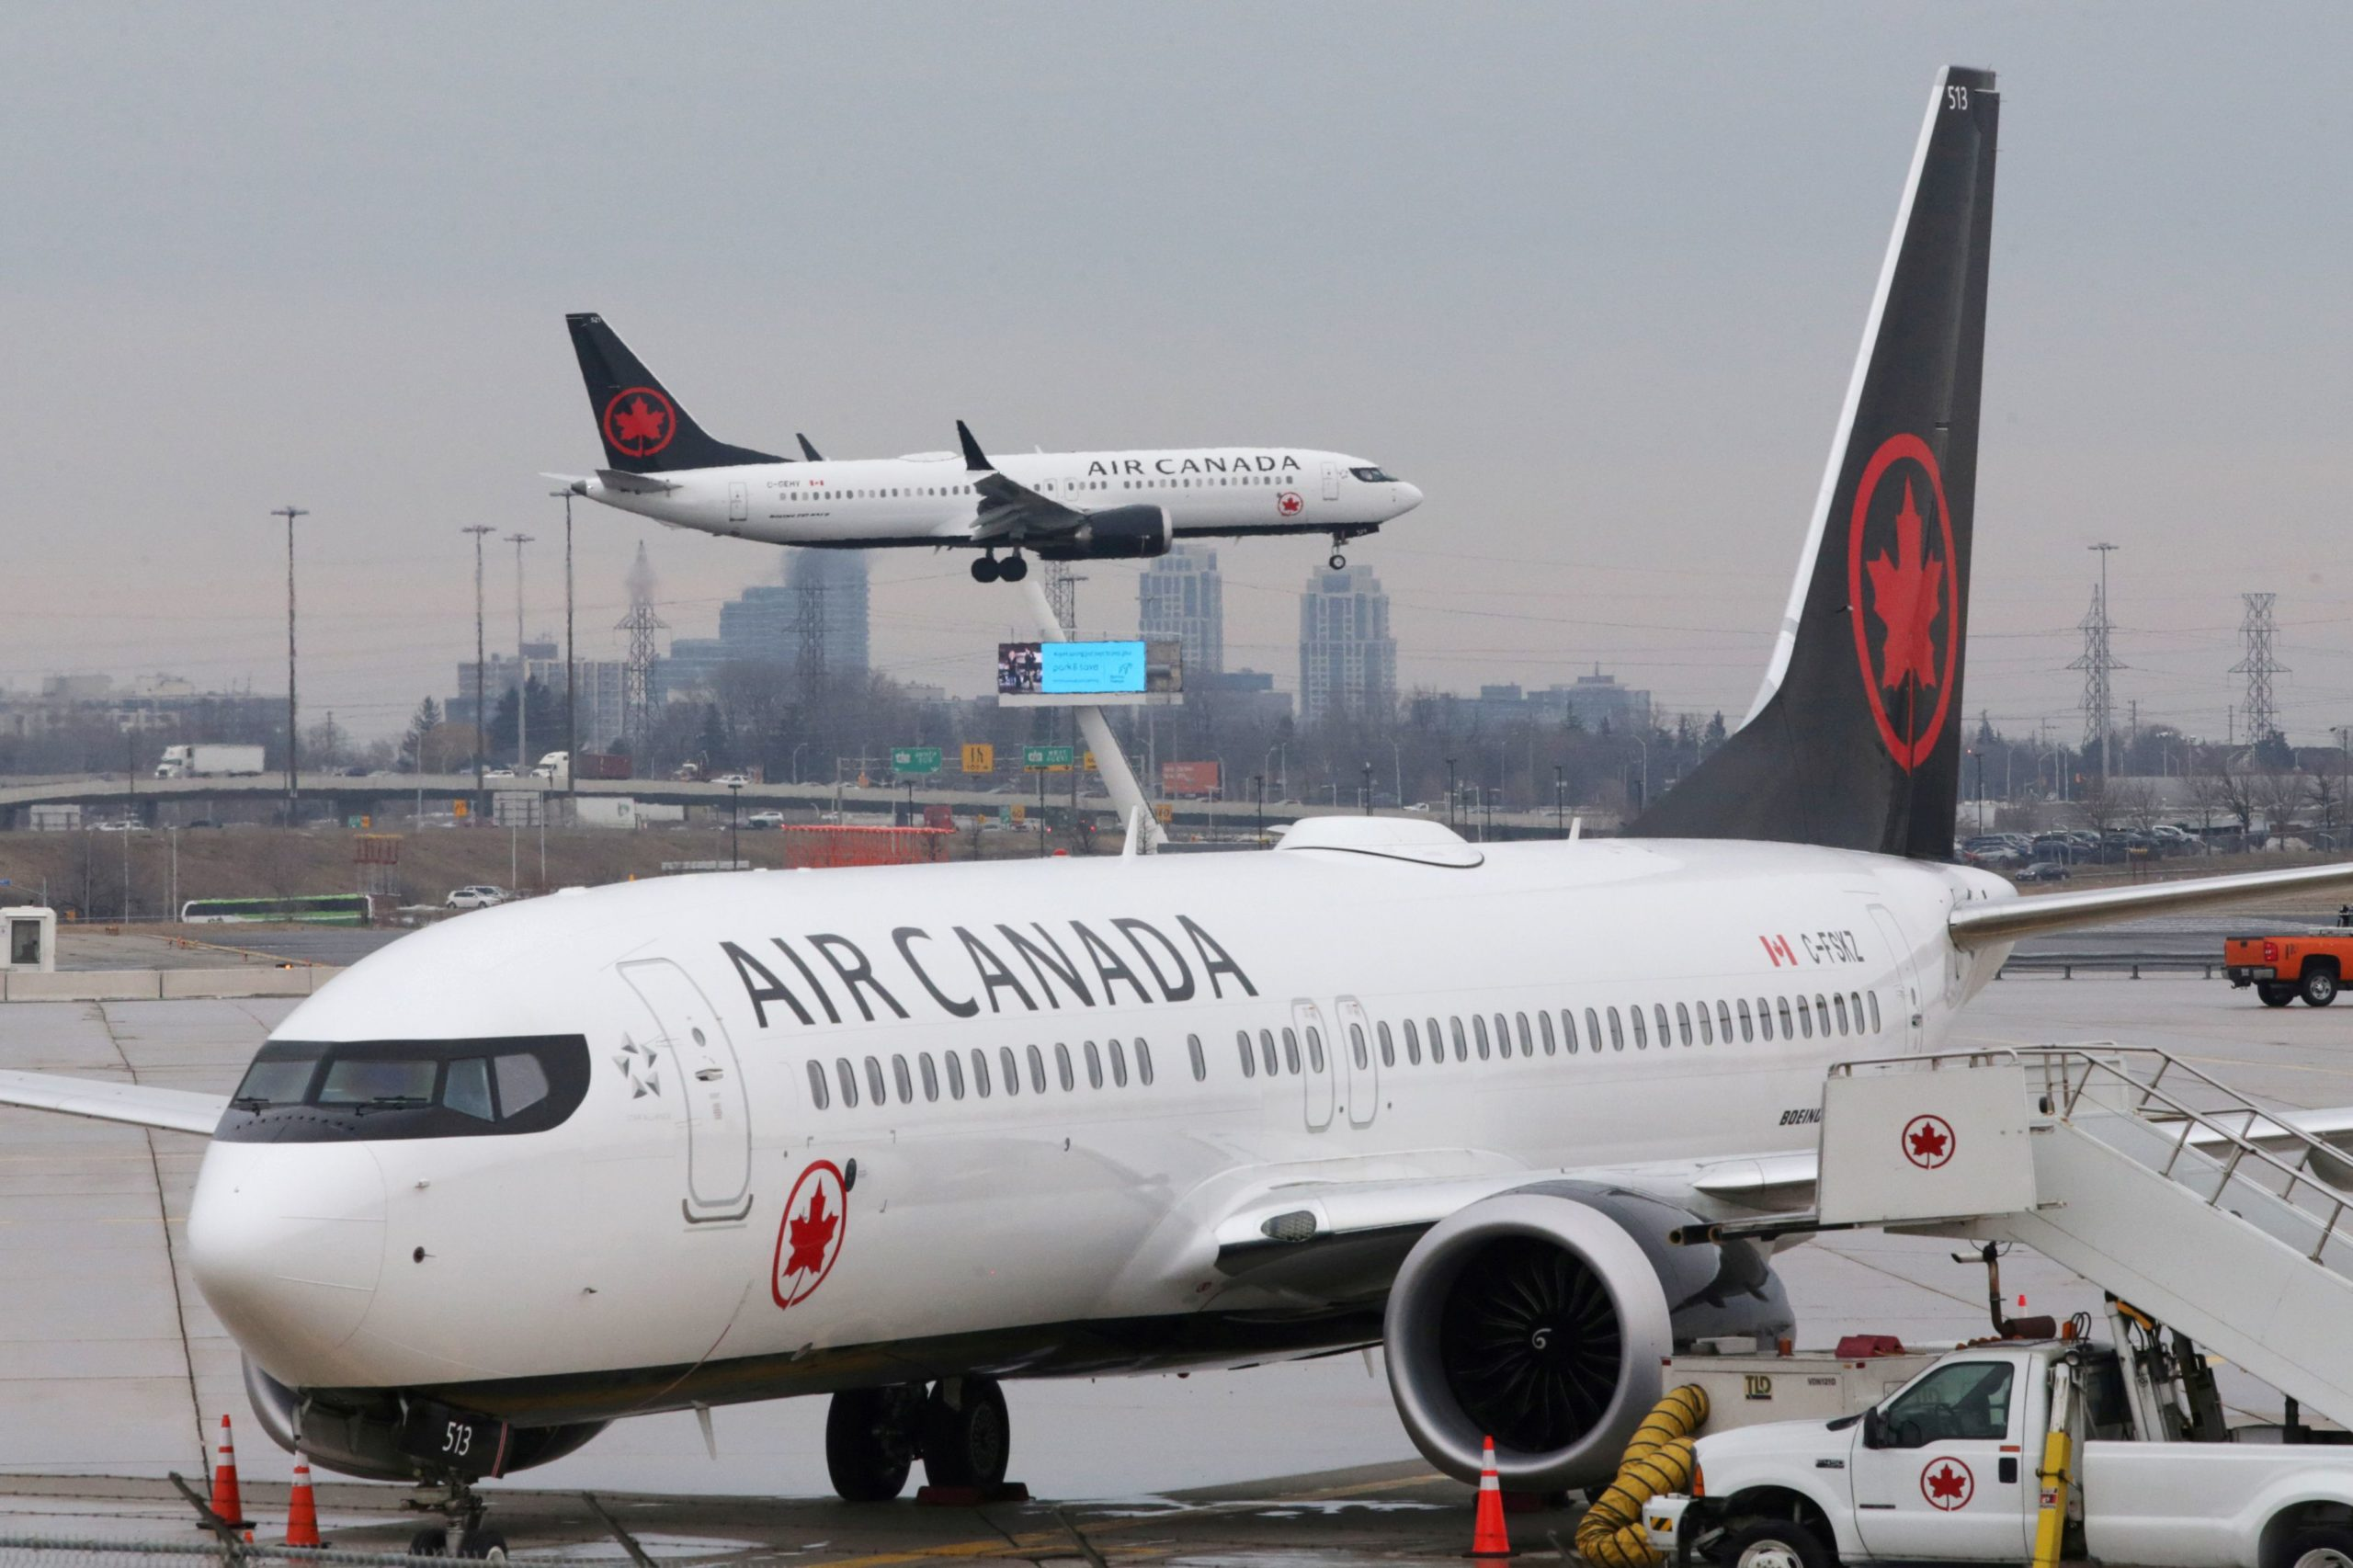 Air Canada to reduce capacity by 90% due to Covid-19 impact